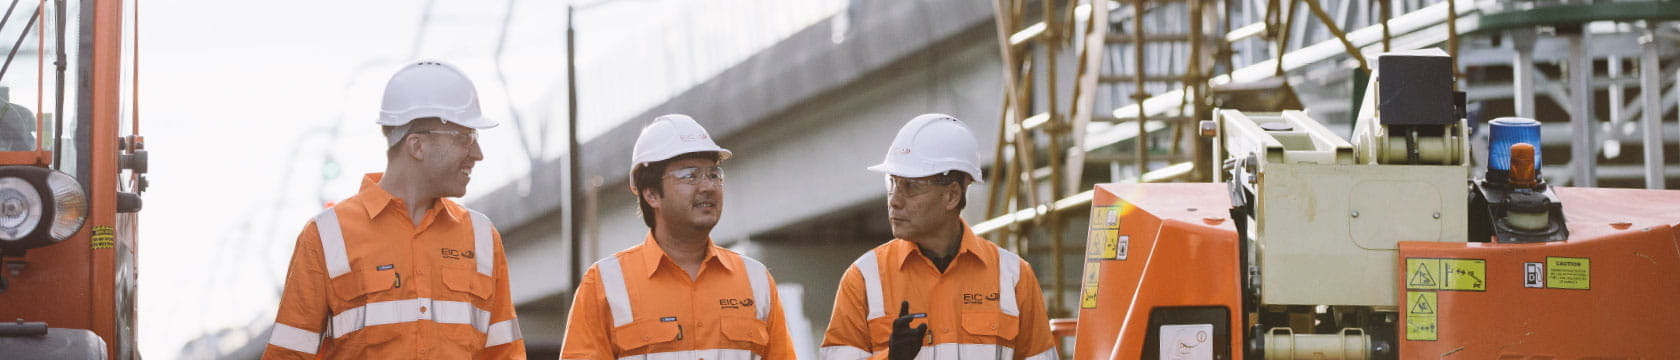 3 male workers walking and talking on site with bridge in background